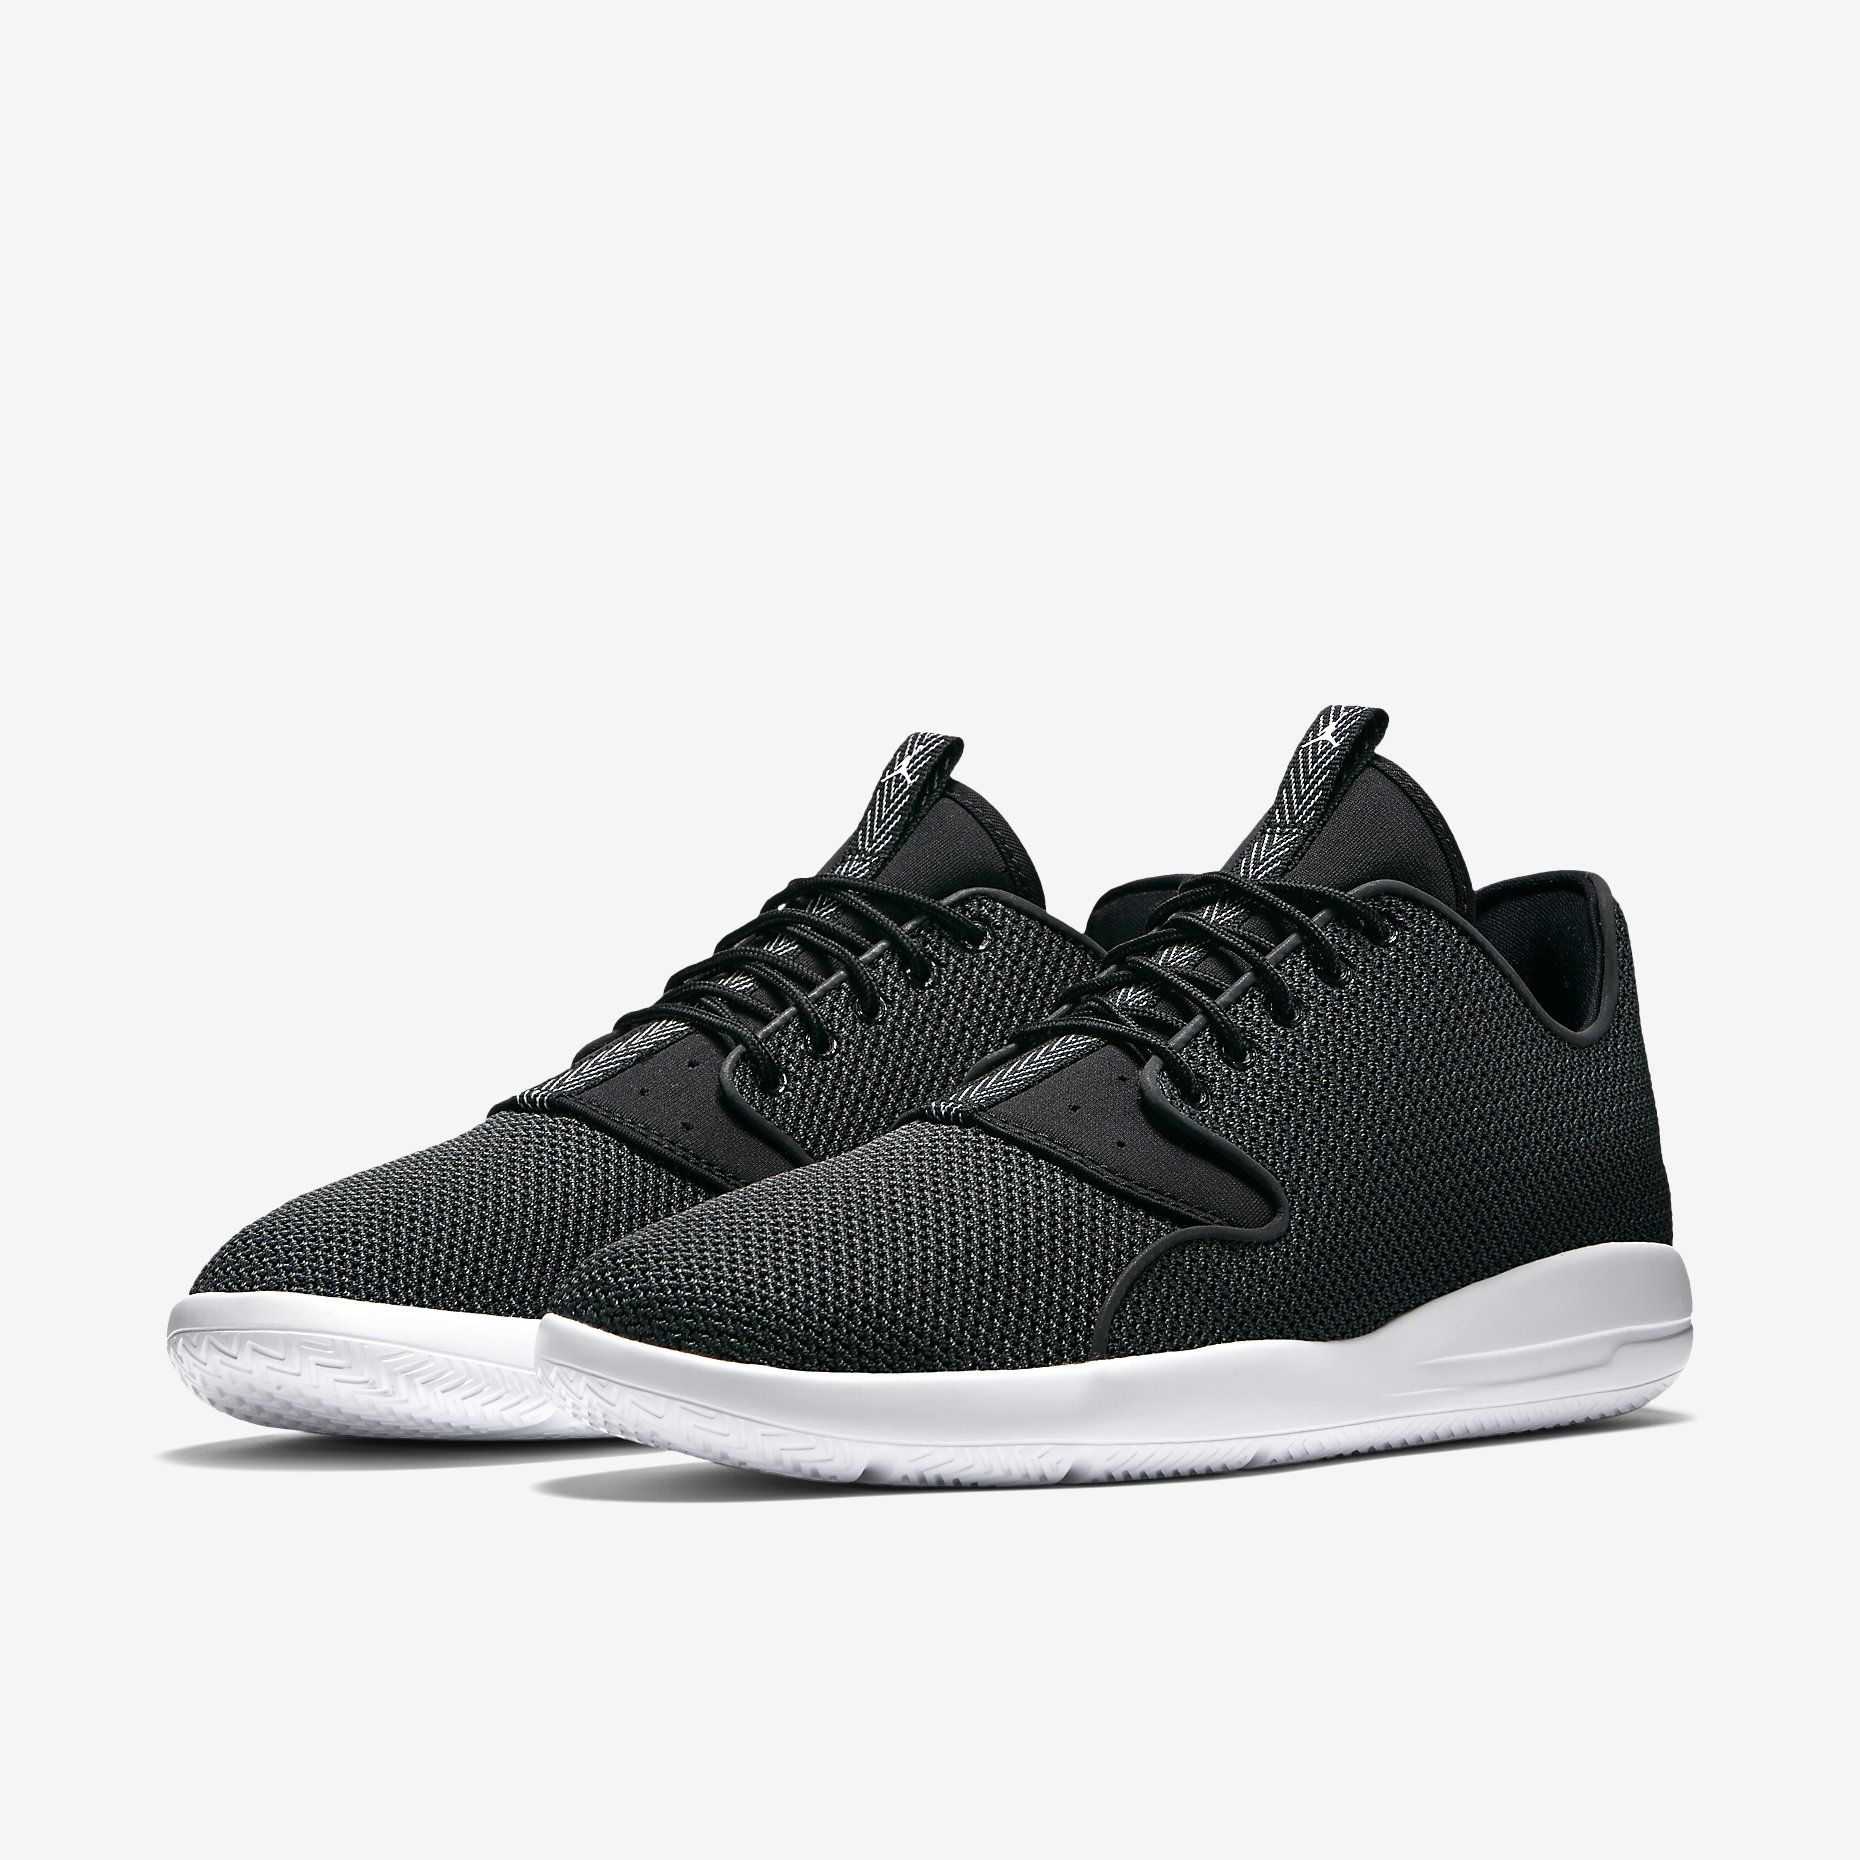 91cddb24ff669b Jordan Eclipse Men s Shoe. Nike Store